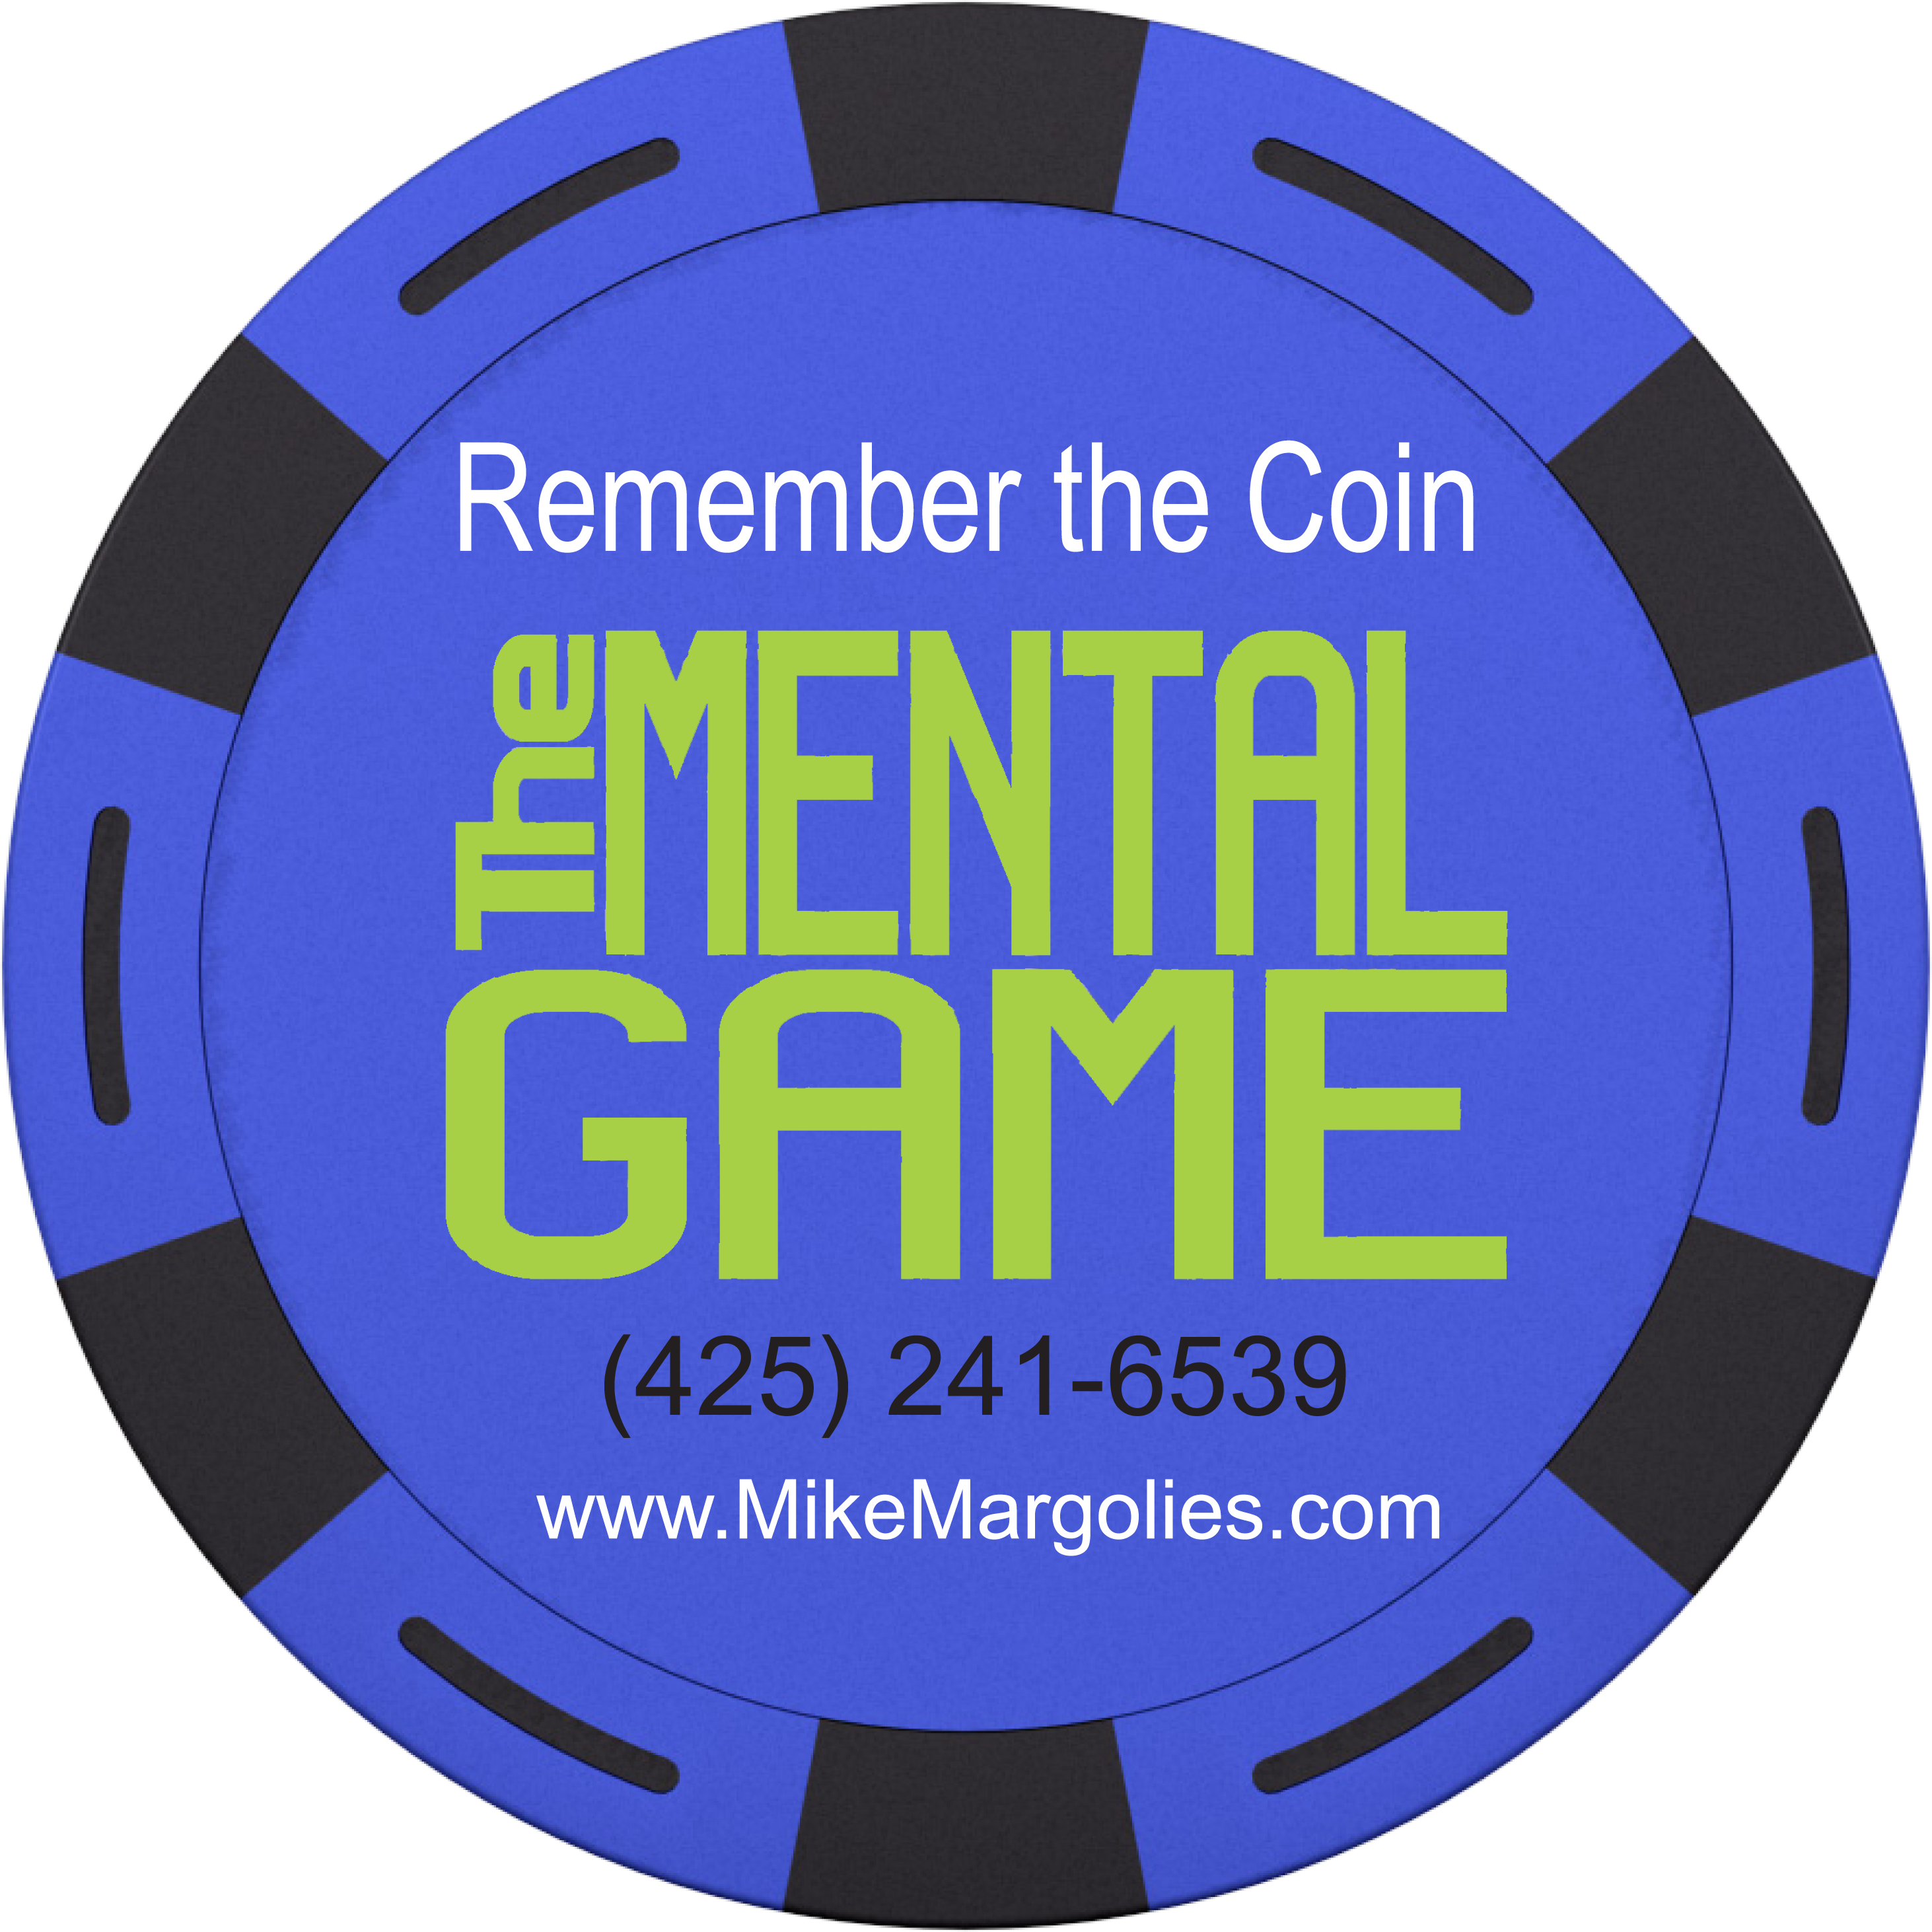 Remember the Coin